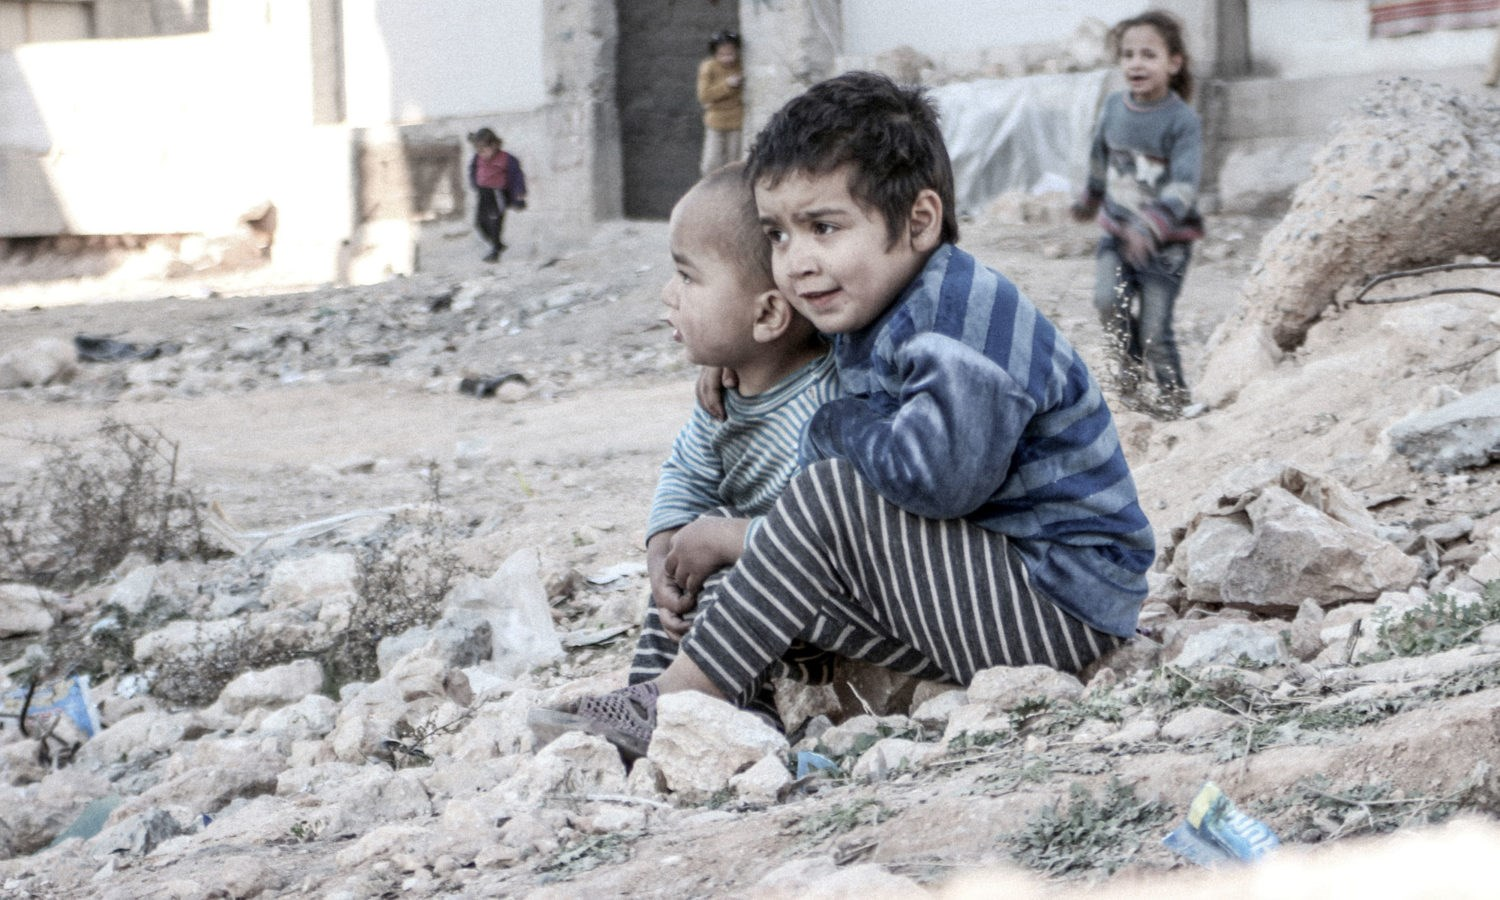 Syria Winter Safe and Warm Appeal - JustGiving